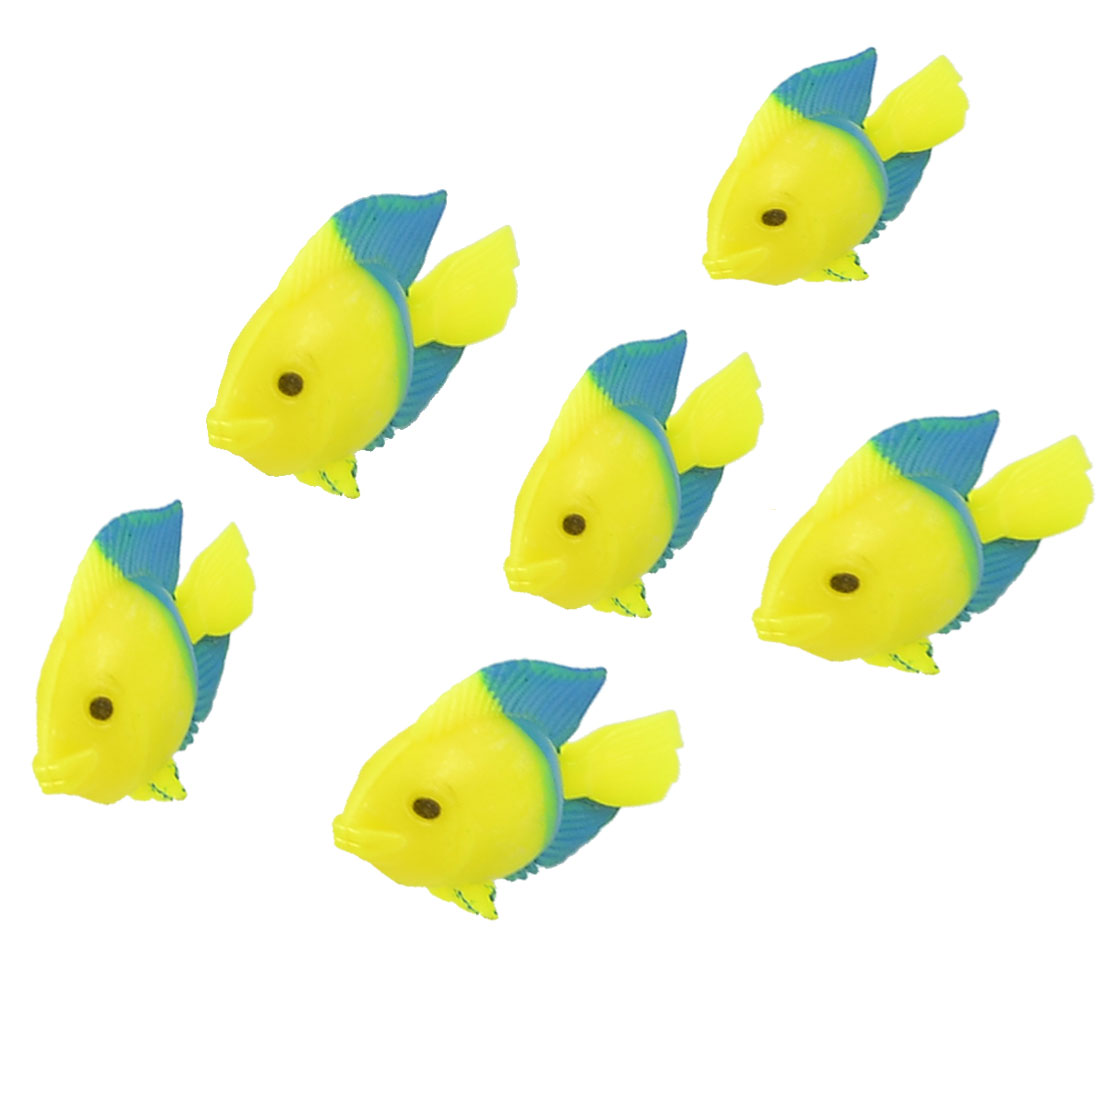 Aquarium Fish Tank Ornament Simulated Yellow Blue Plastic Fishes 6 Pcs